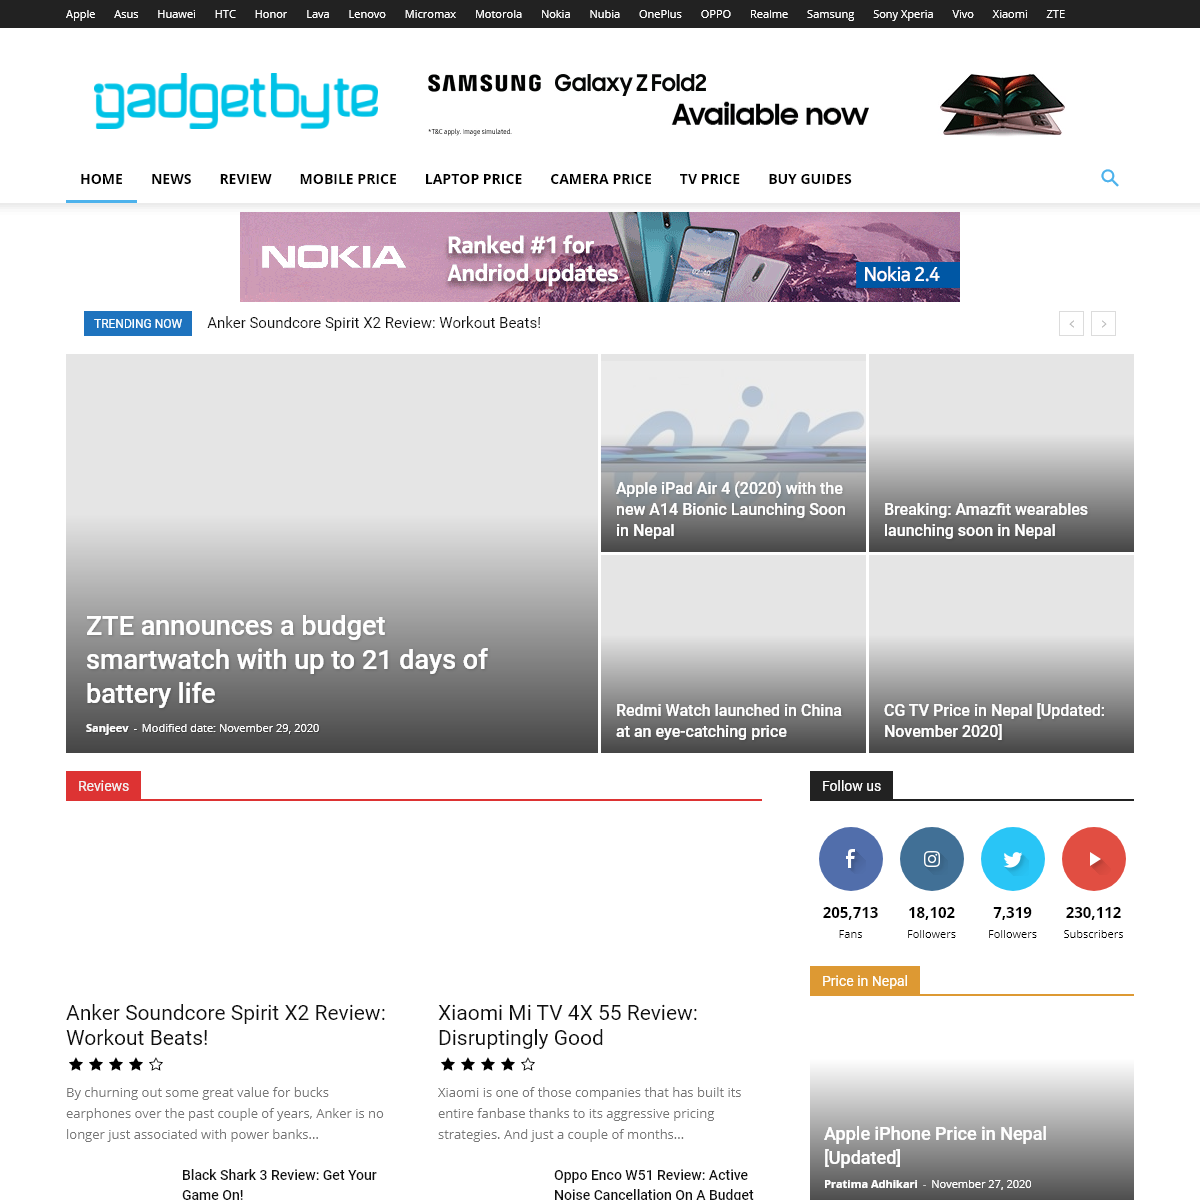 Gadgetbyte-Latest tech news, gadget reviews & mobile price in Nepal